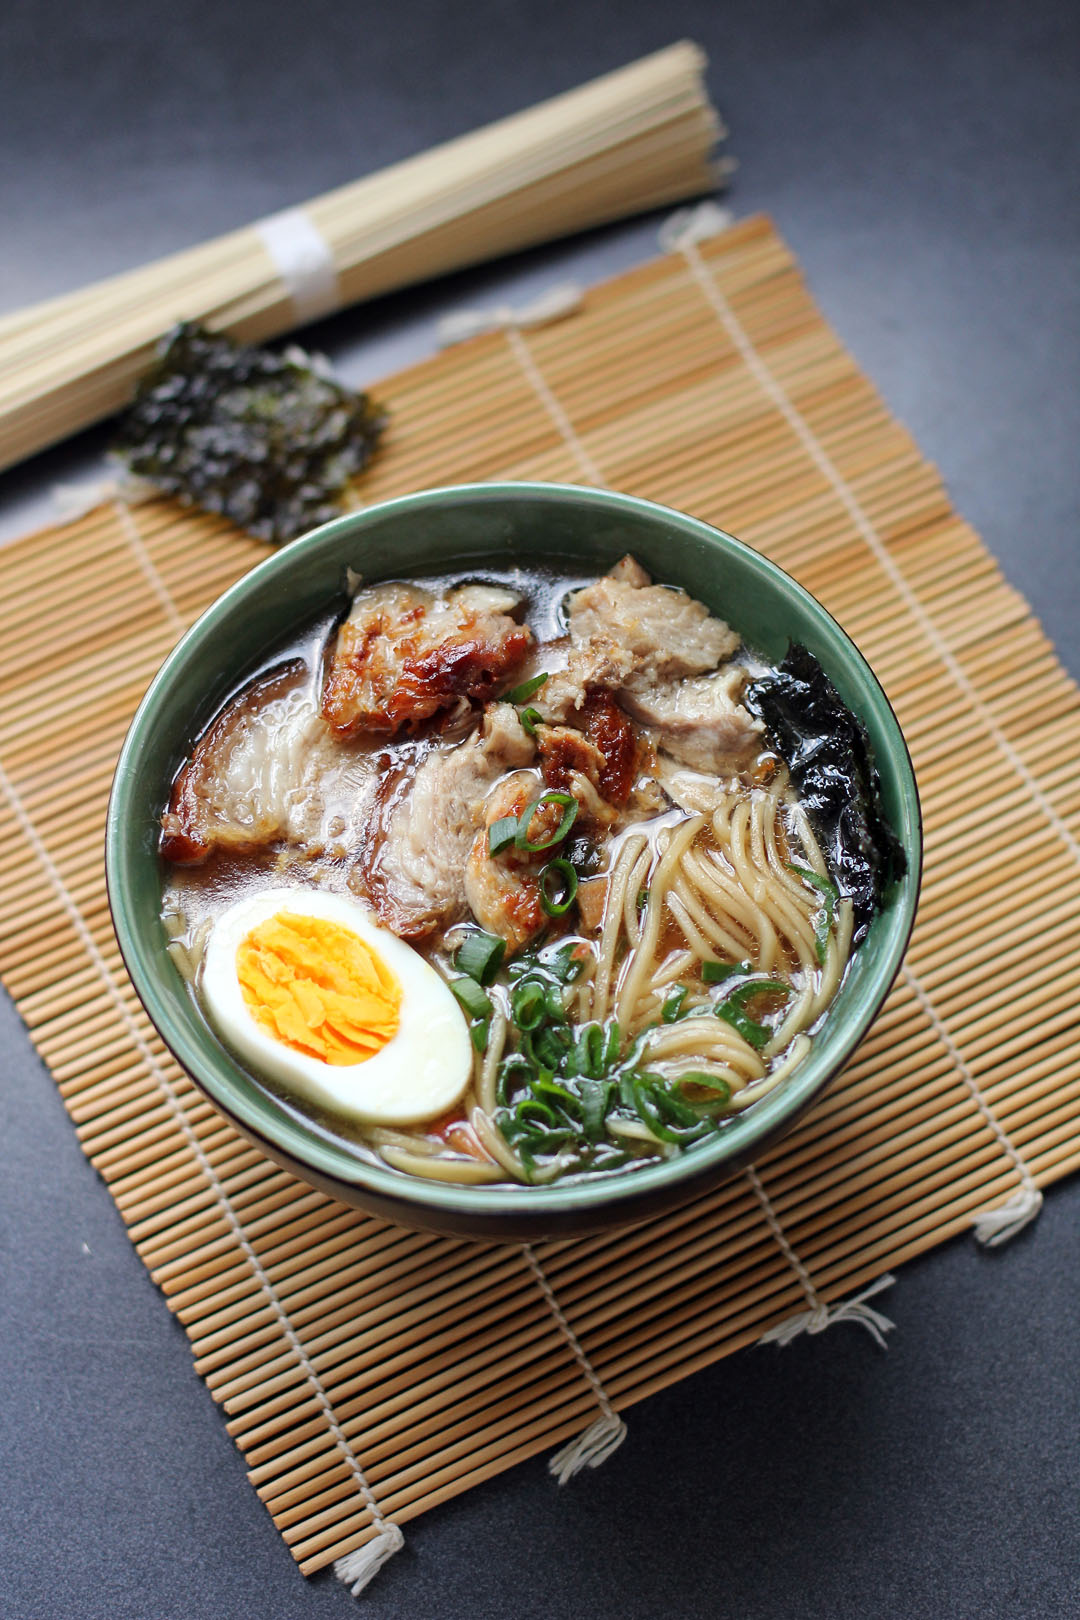 sauce ramen recipe soy distinguished its is ramen of types many one ramen by shoyu of the